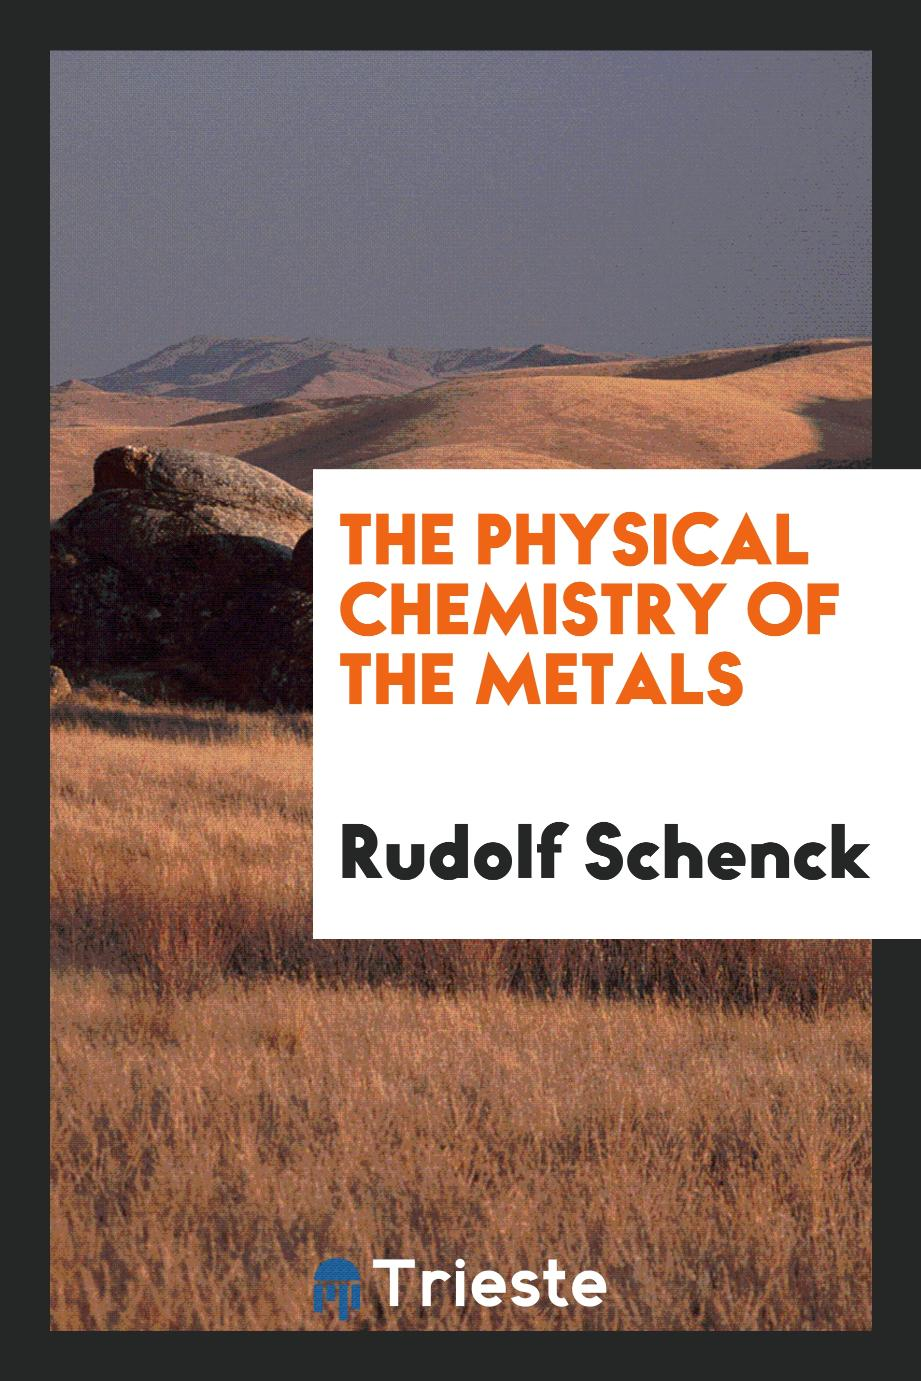 The physical chemistry of the metals